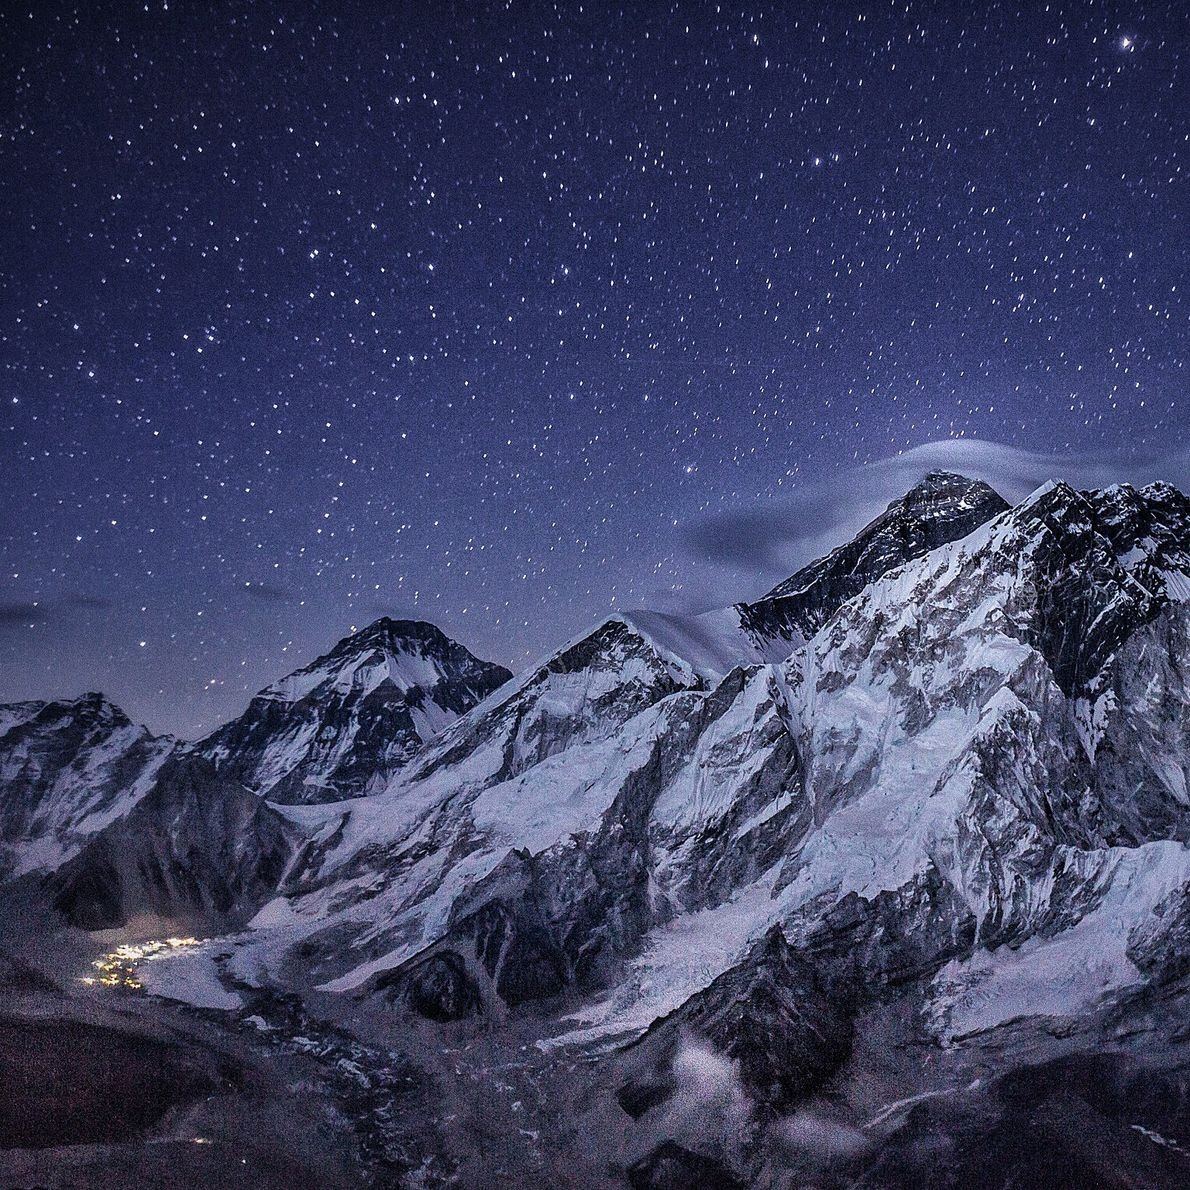 """""""Pictured here is Everest just after the 2014 tragic avalanche that killed 16 high-altitude workers. The ..."""